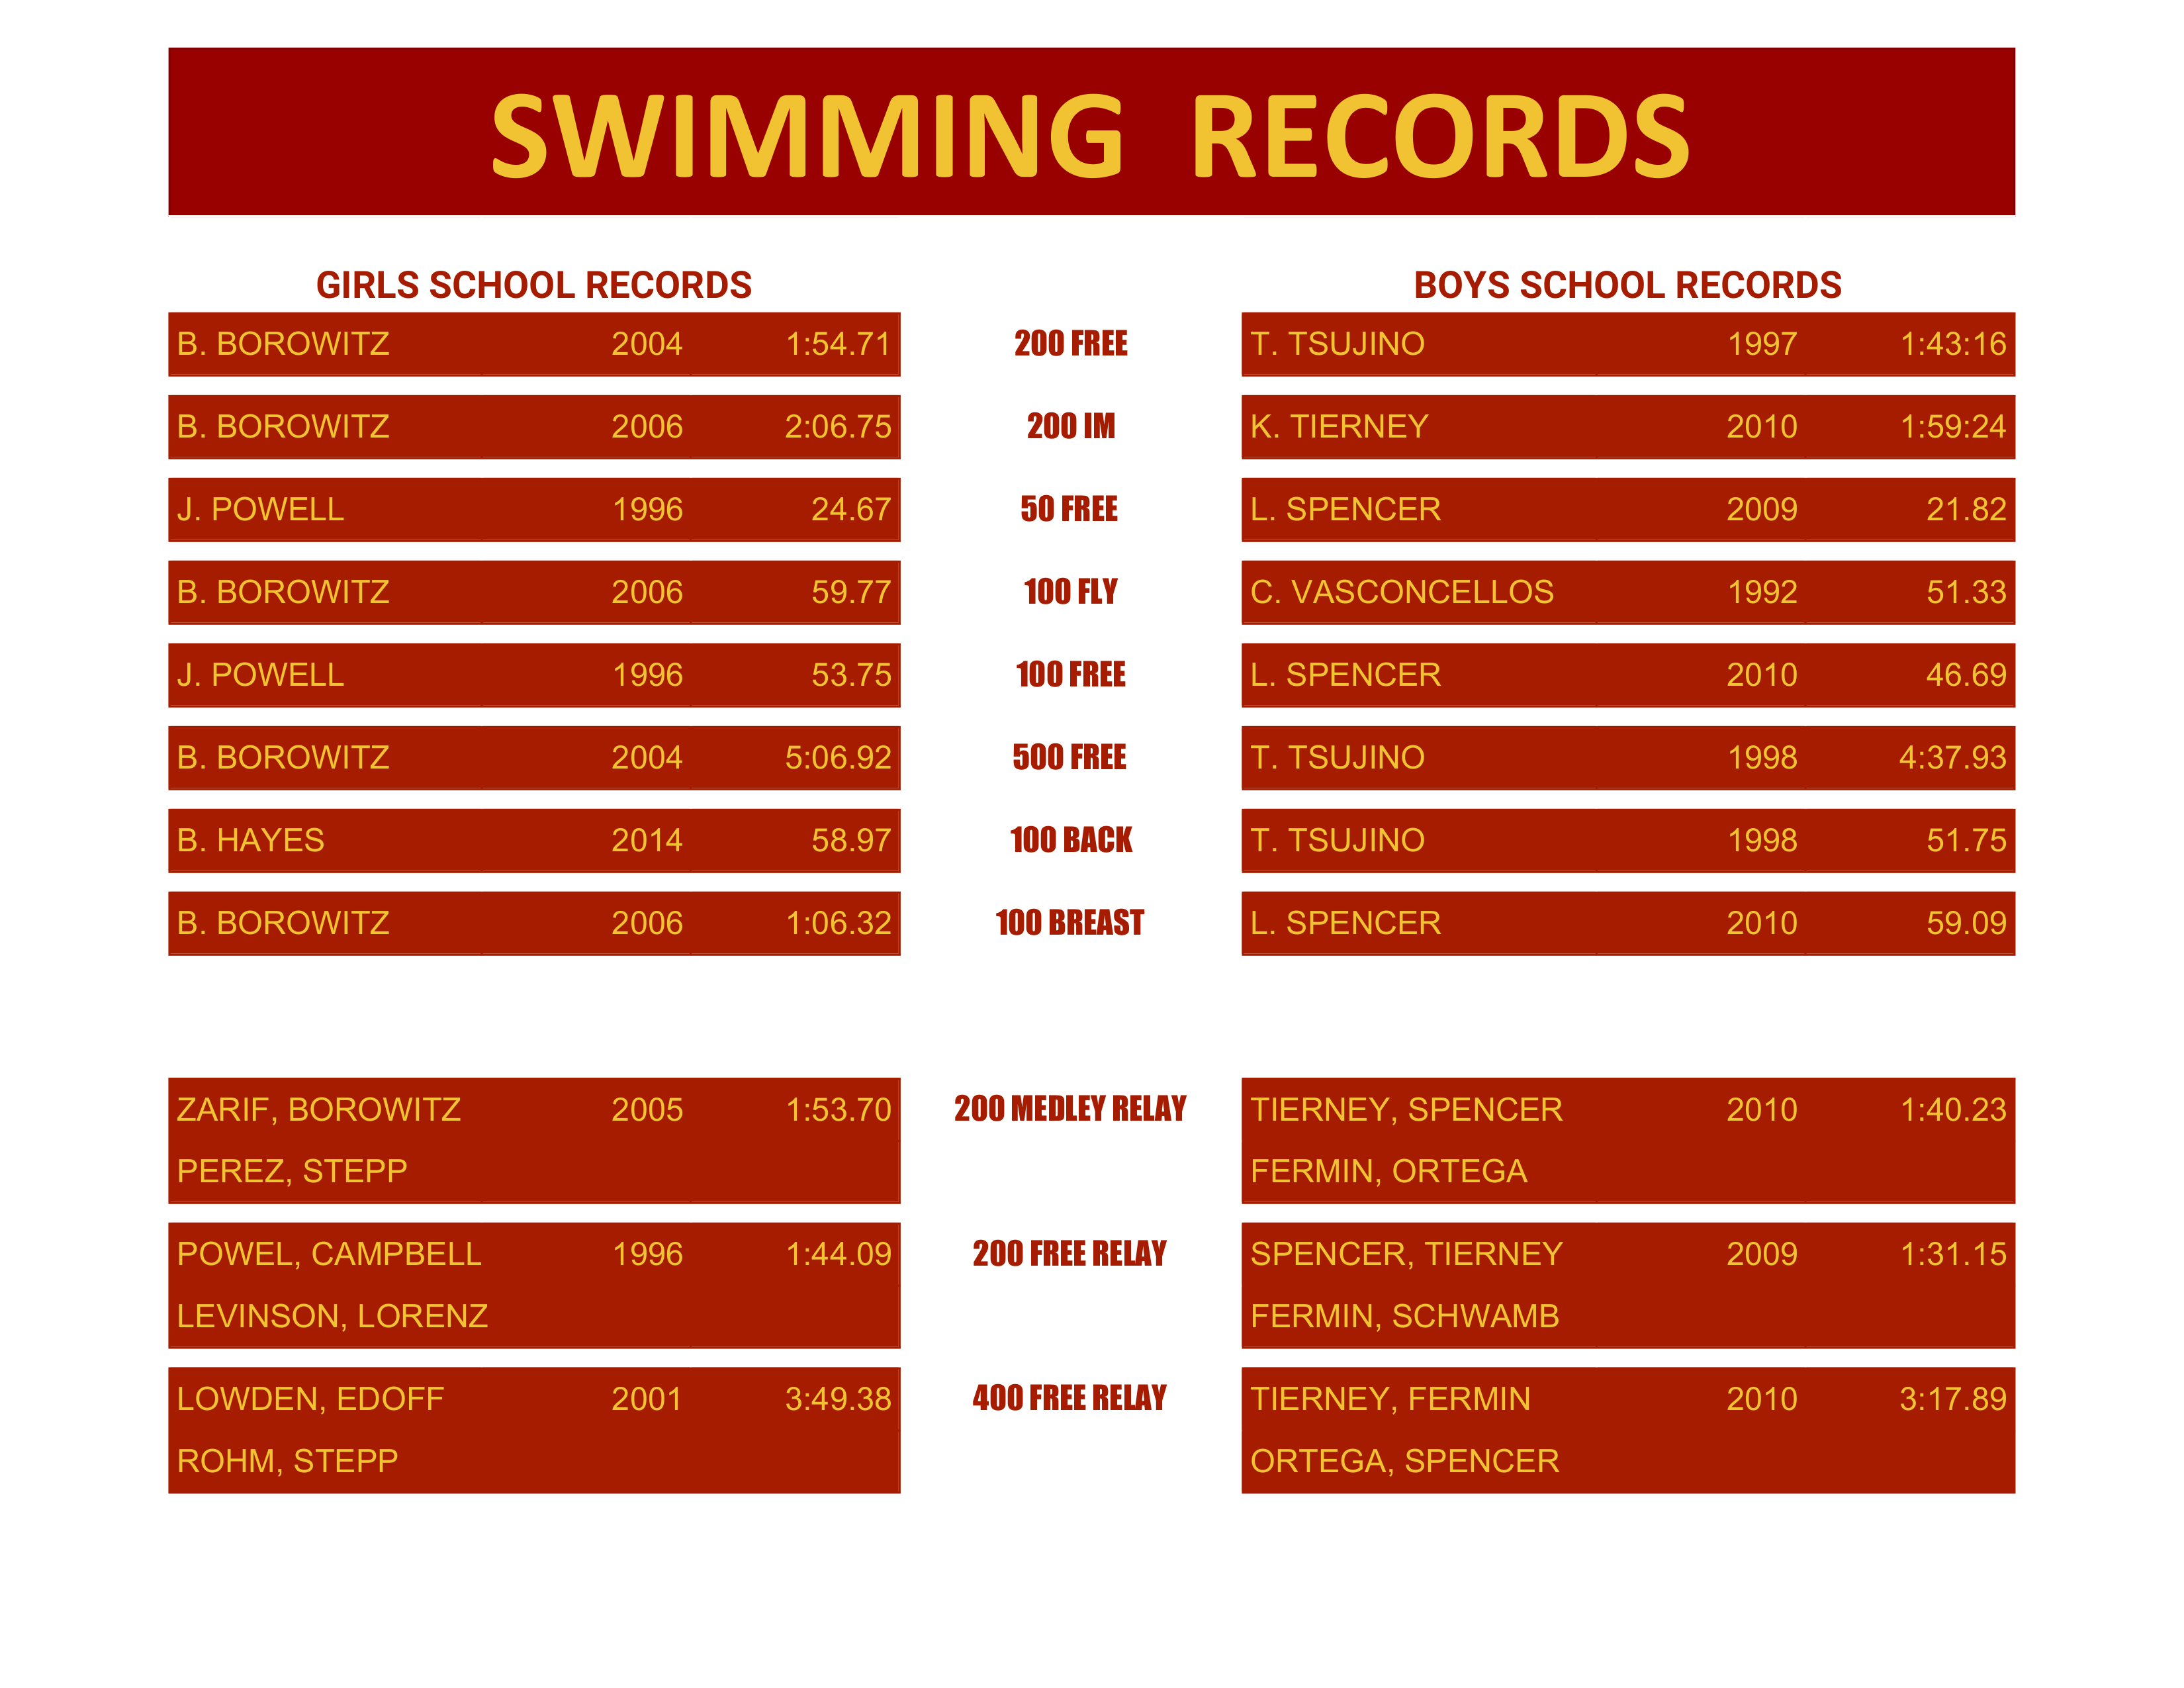 EMHS All-Time Swim Records